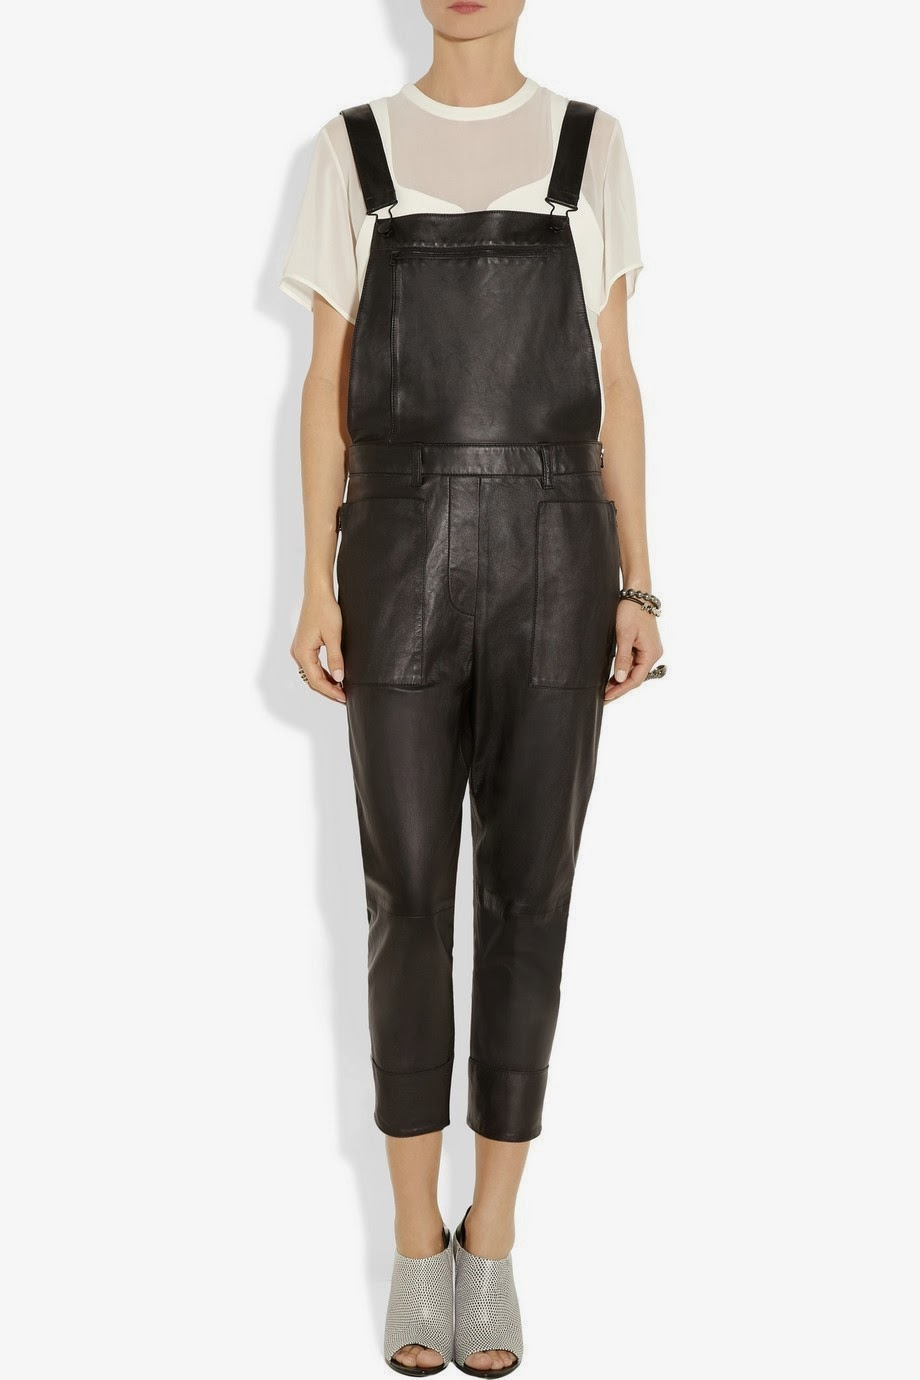 Overalls Are Making A Comeback As The Latest Fashion Trend: Leather Overalls And Coveralls